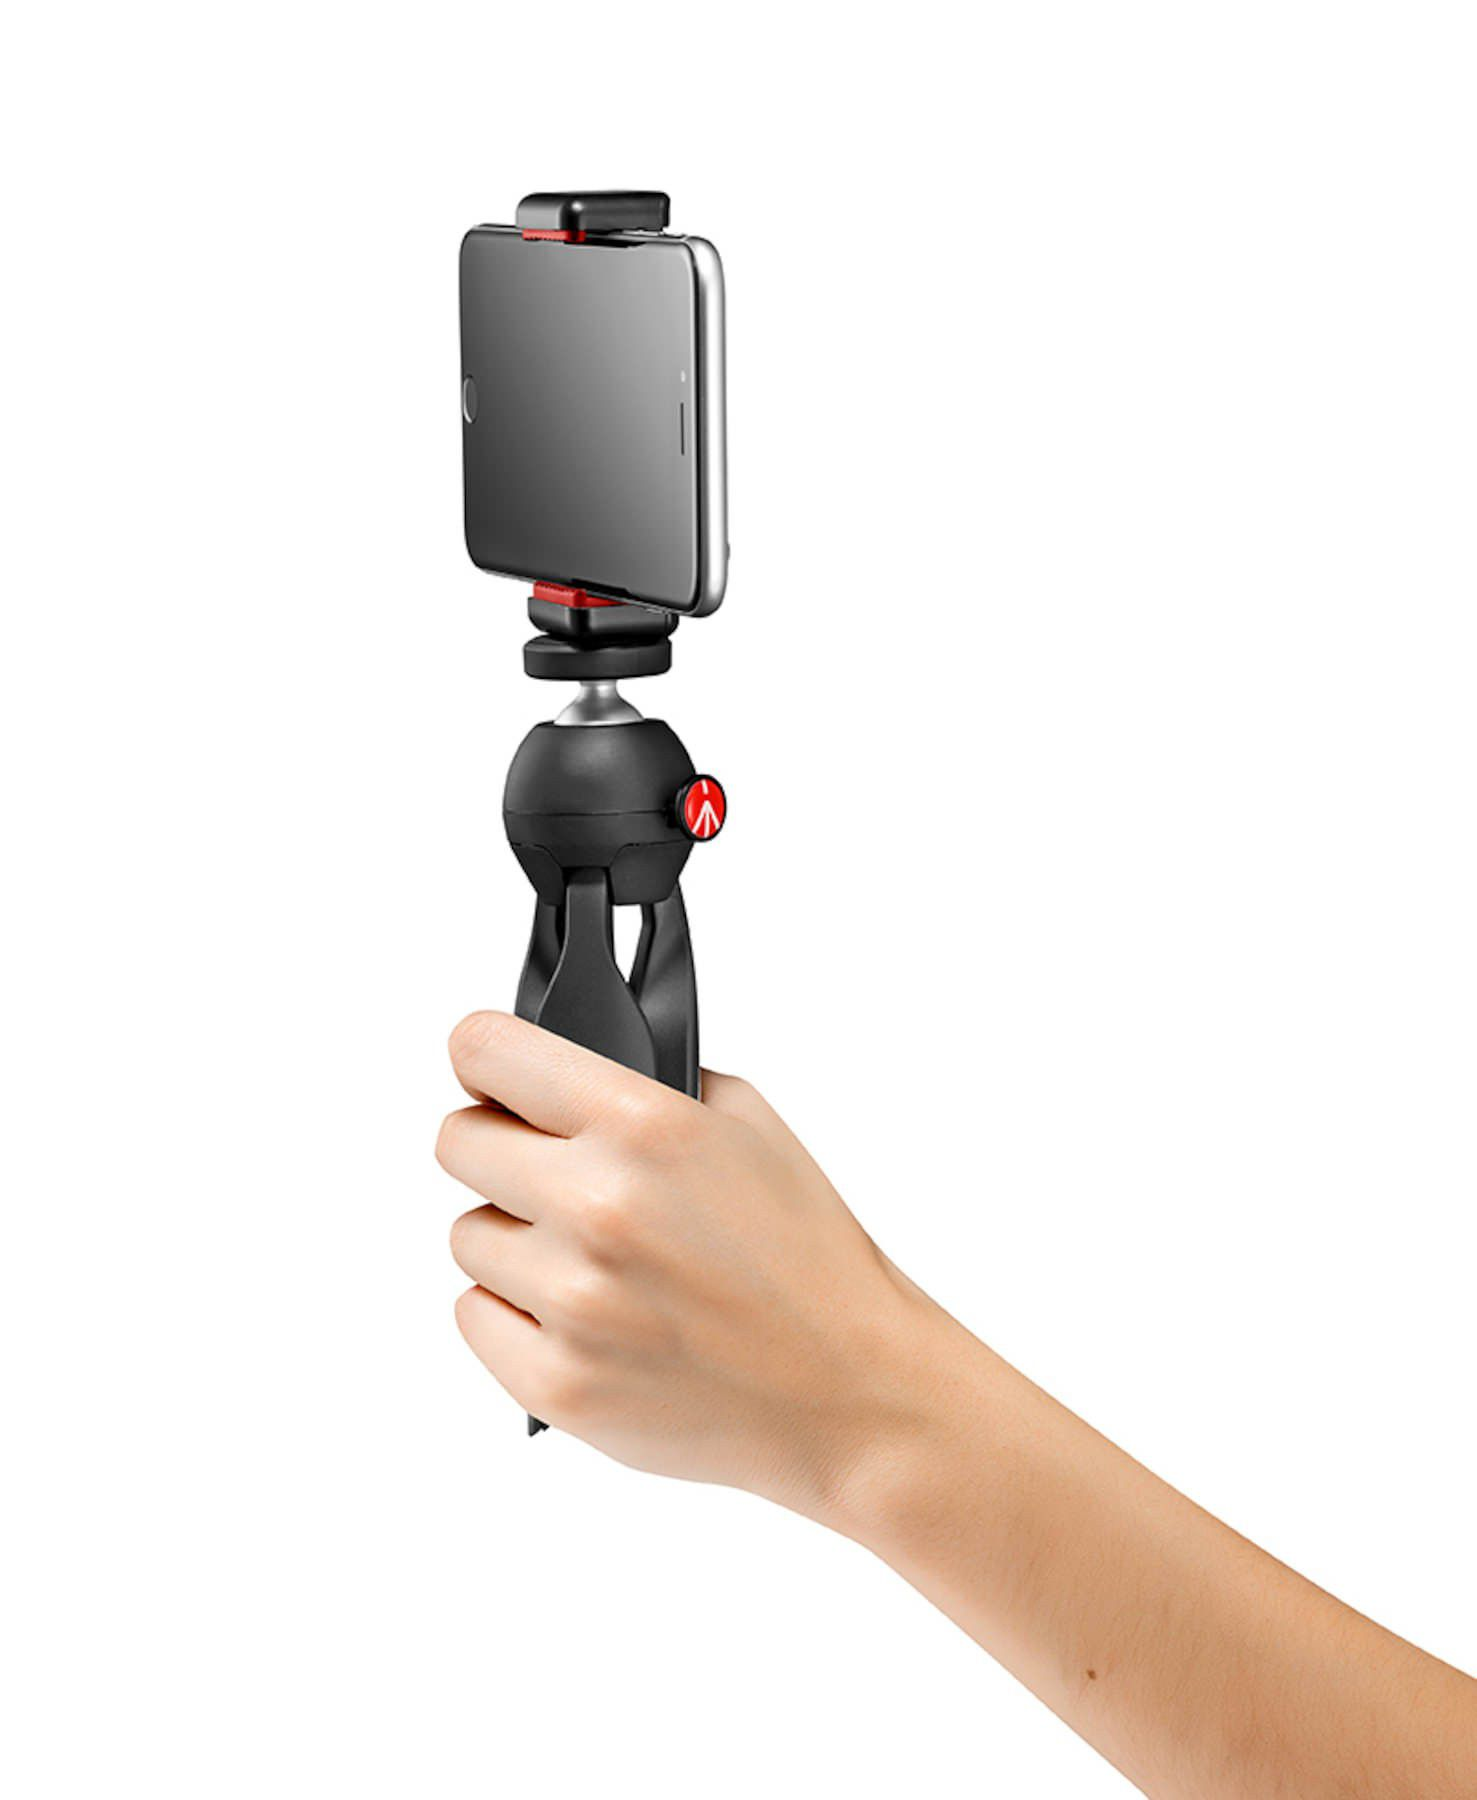 MINI TRIPÉ MANFROTTO MKPIXICLAMP-BK PIXI SMART PARA IPHONE CÂMERA COMPACT E DSLR